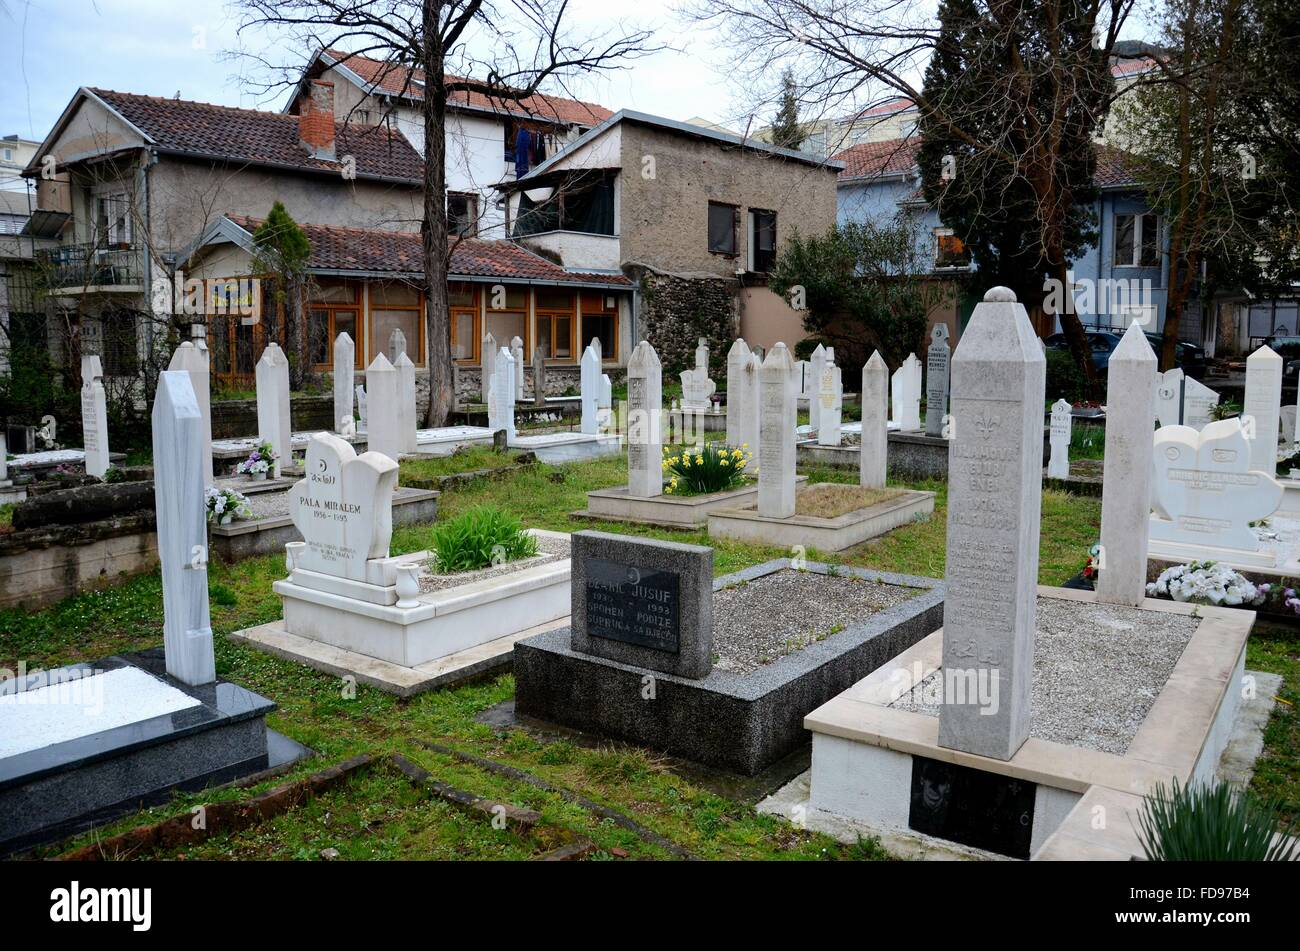 Muslim graveyard ornate marble tombstones at Mostar Islamic cemetery Bosnia Herzegovina - Stock Image